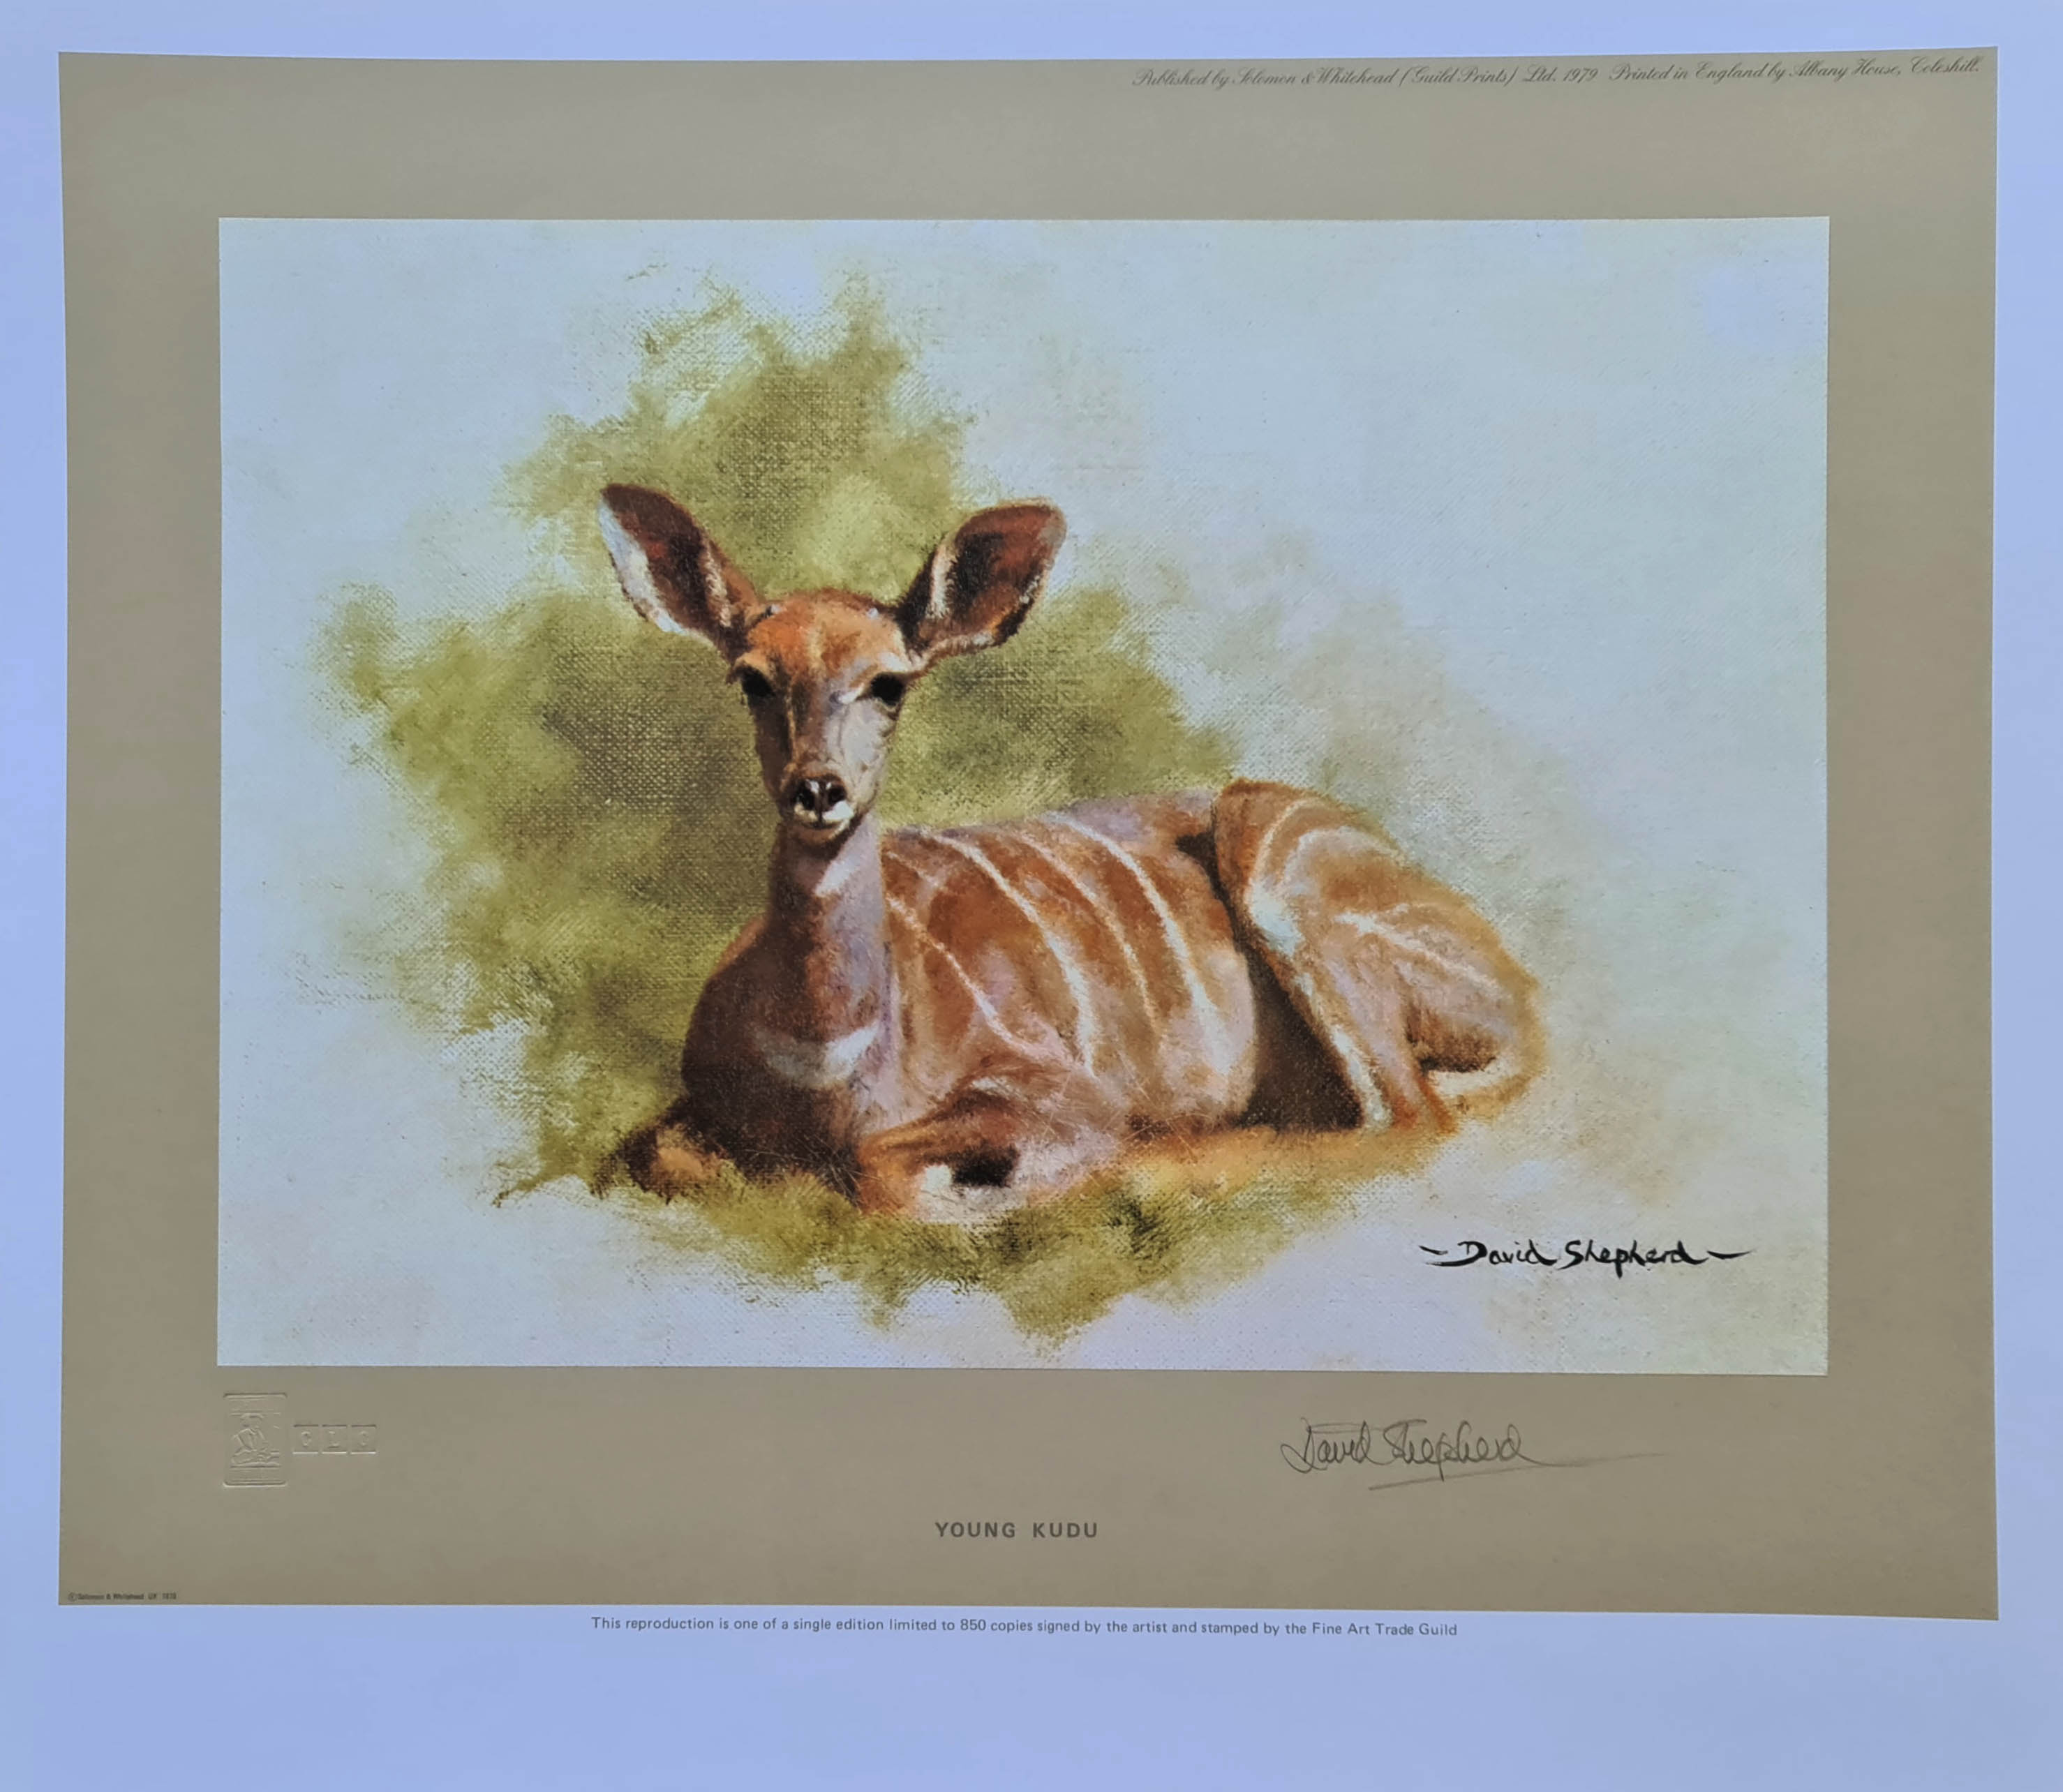 shepherd youngkudu signed print